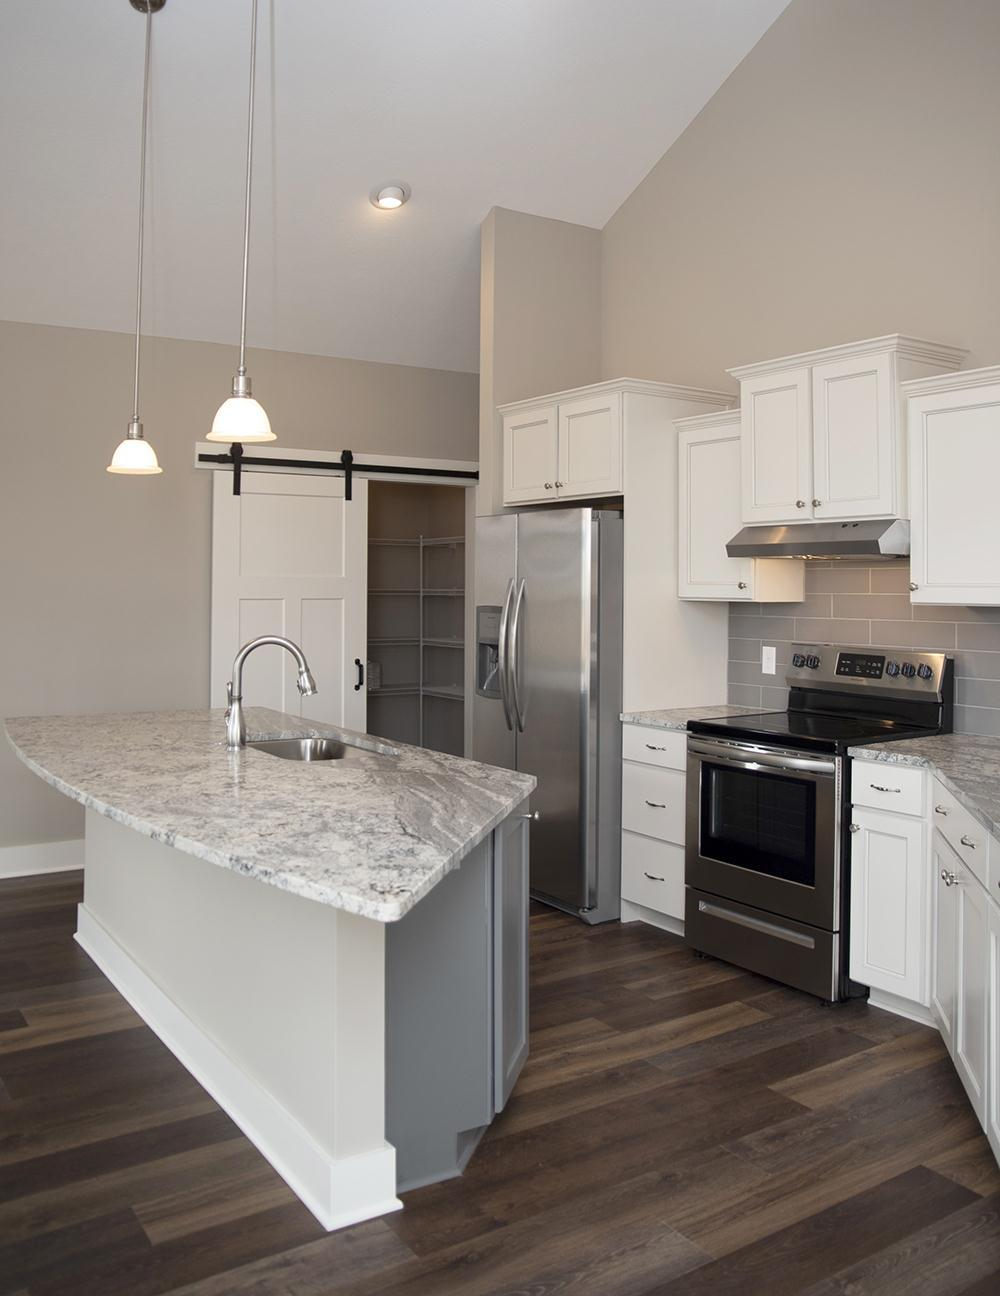 Kitchen featured in The Denali By Joyner Homes in Indianapolis, IN